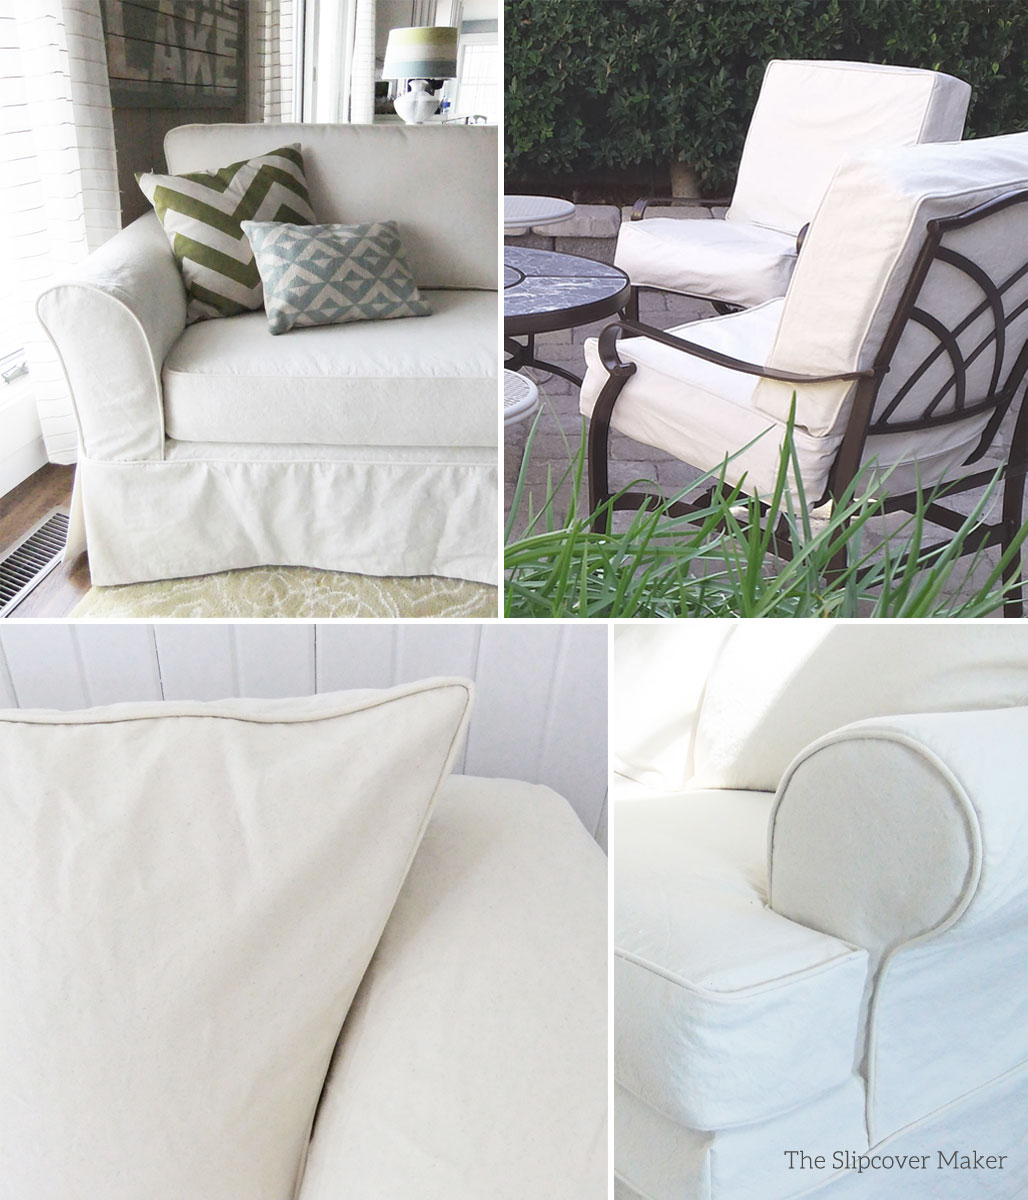 Slip covers slipcovers for sectional couches slipcovers for Chaise cushion slipcover